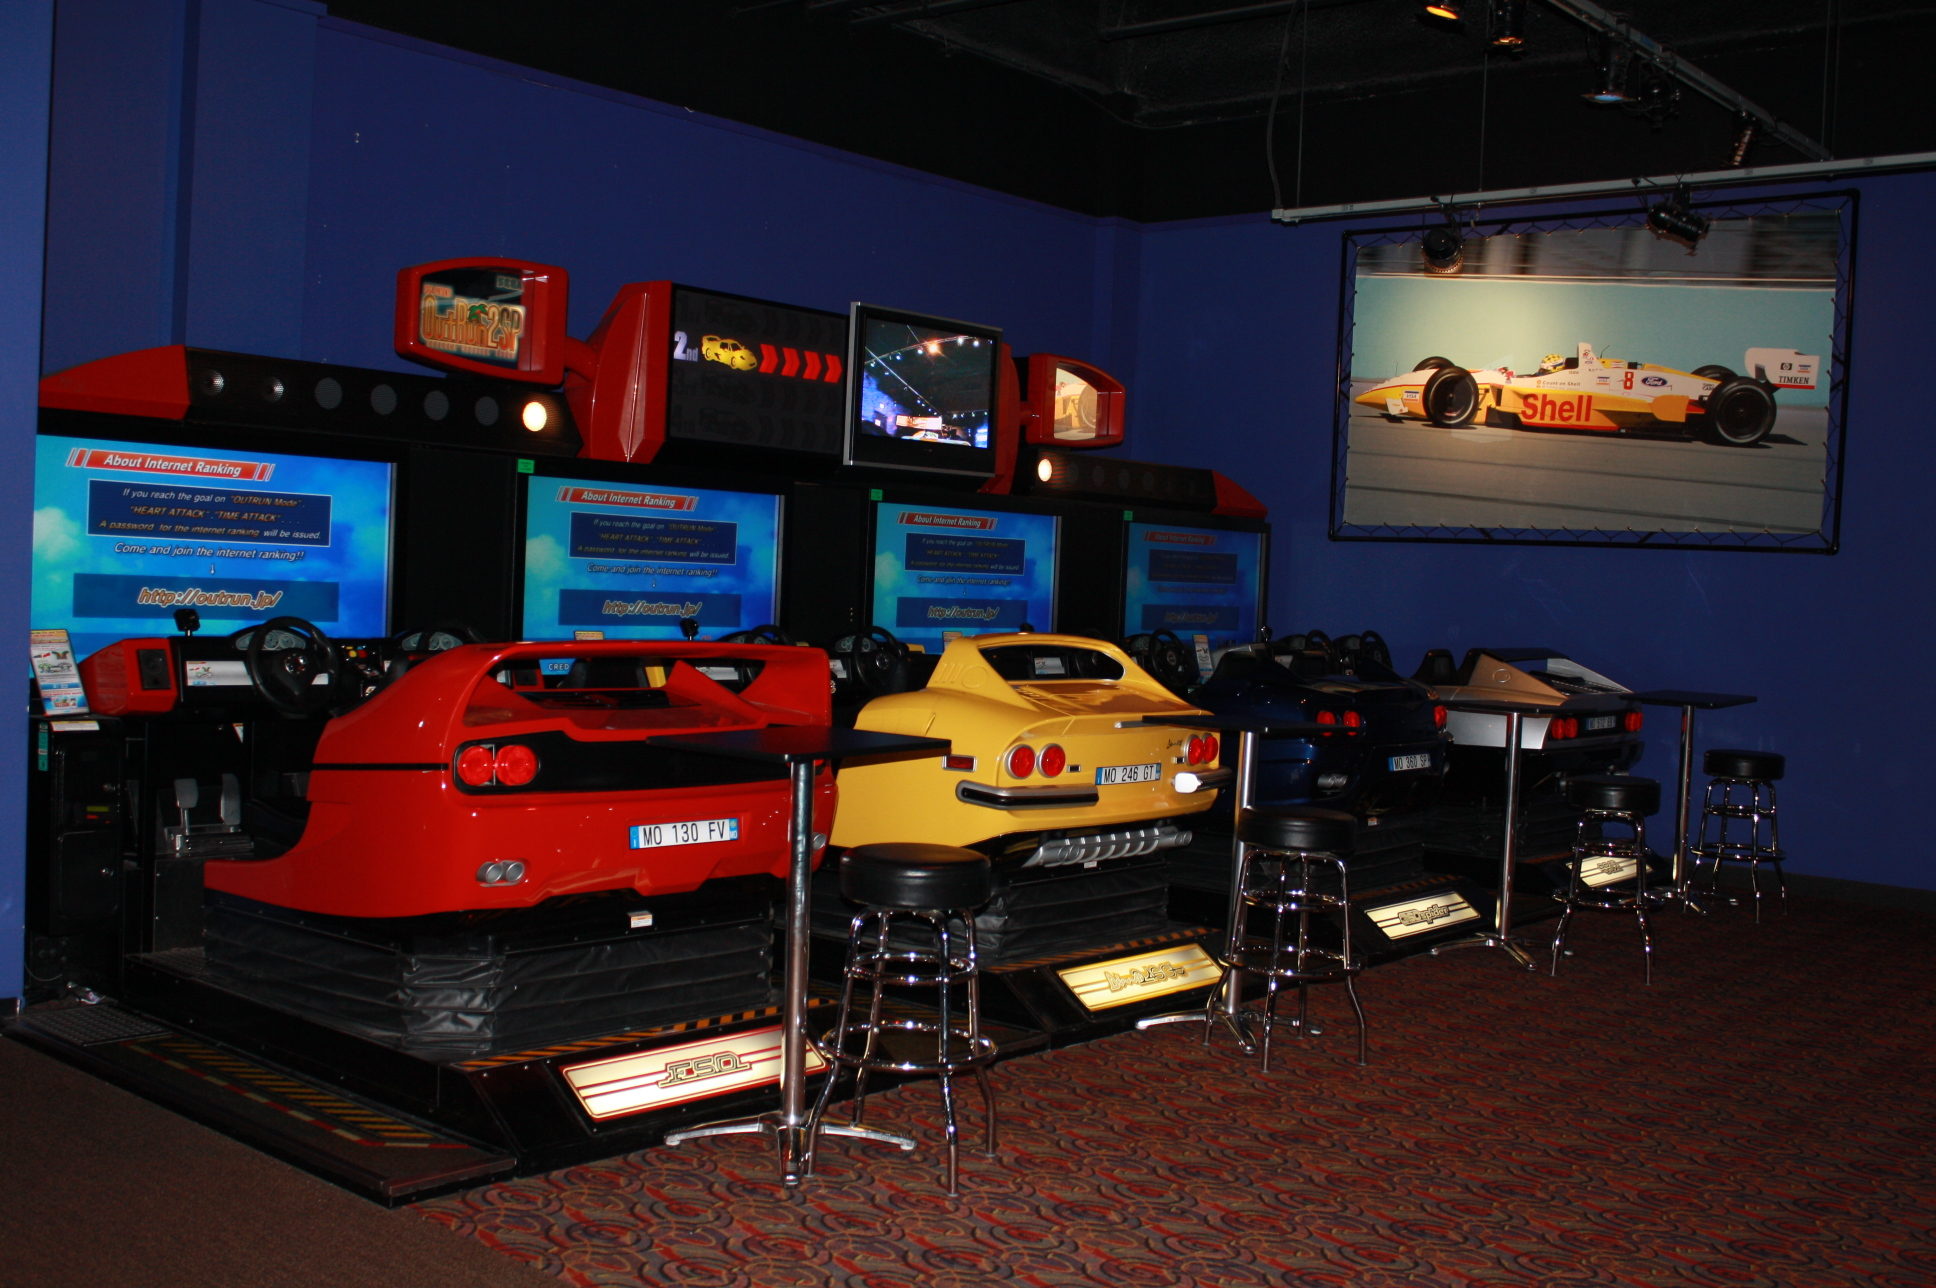 Apr 30, · Gameworks, Schaumburg: See 14 unbiased reviews of Gameworks, rated 4 of 5 on TripAdvisor and ranked # of restaurants in Schaumburg.4/4(14).